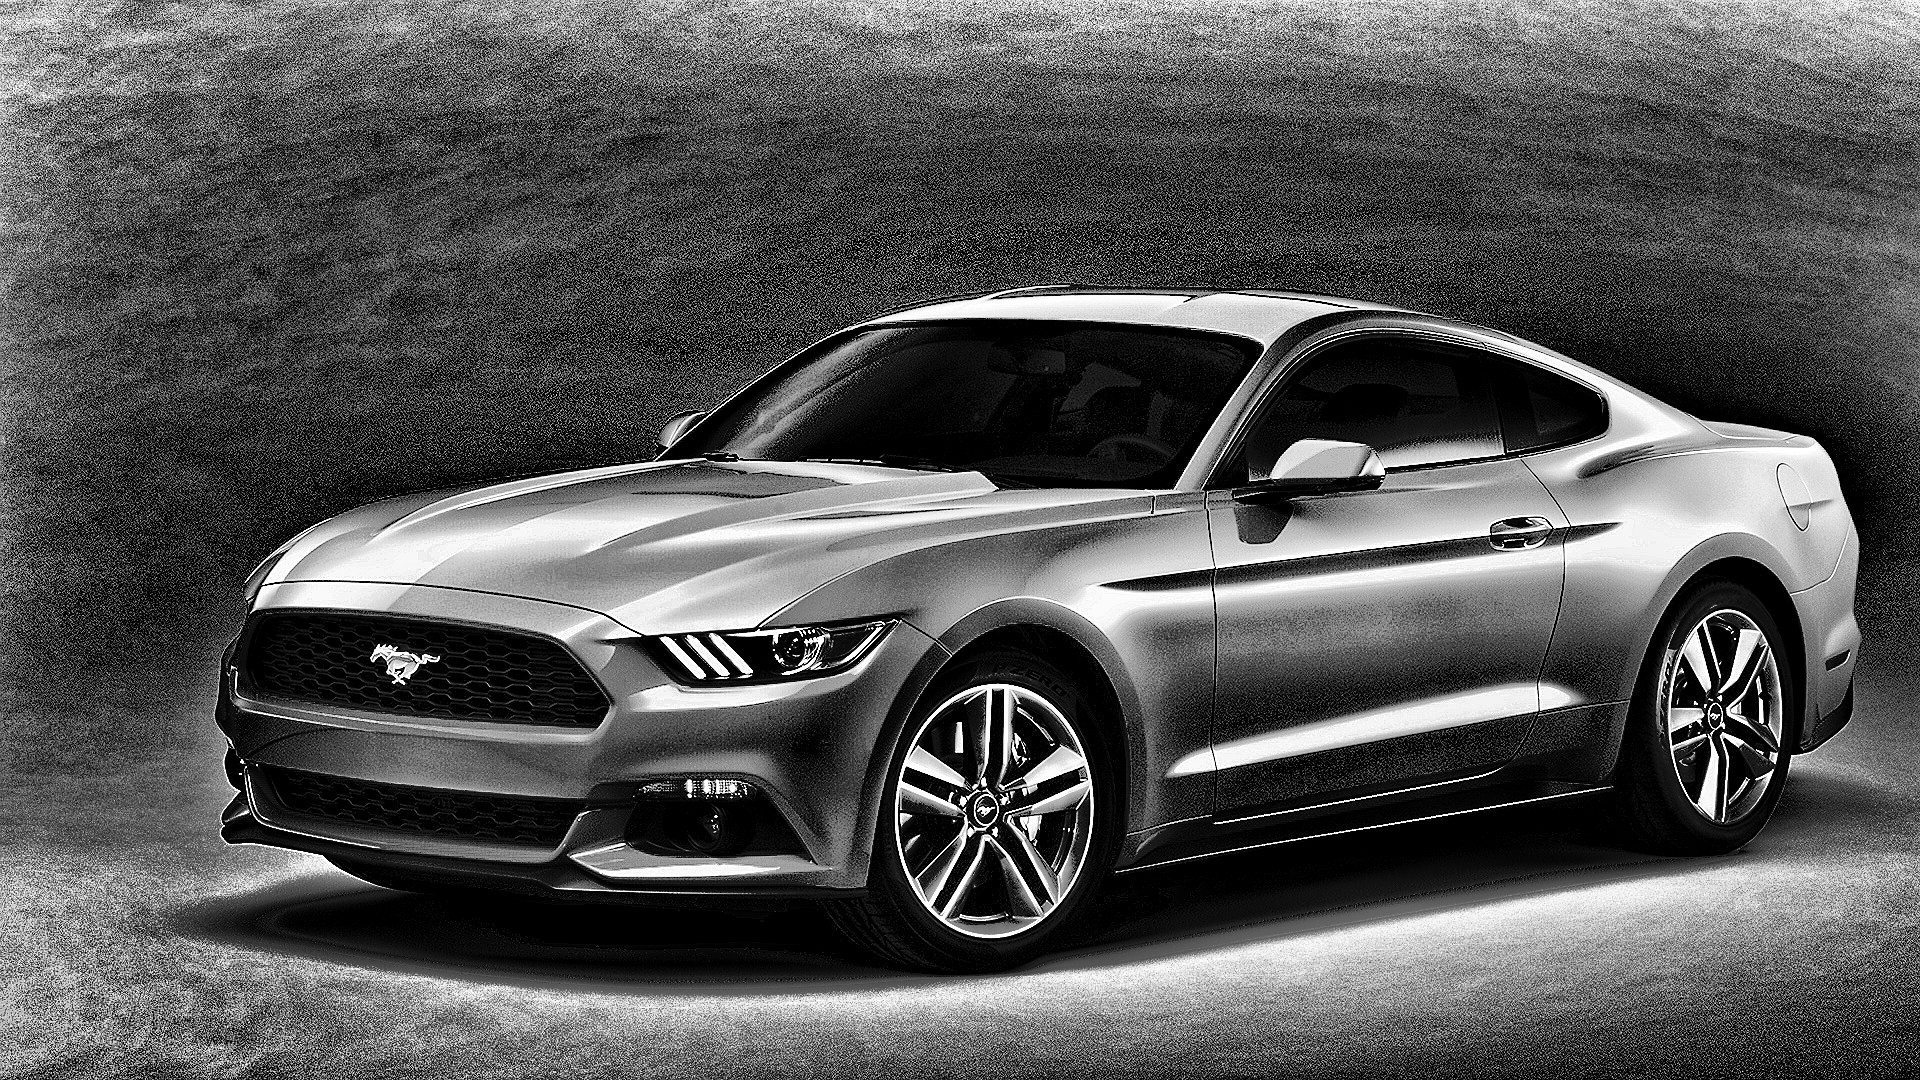 Ford mustang papier peint hd - Ford mustang wallpaper download ...